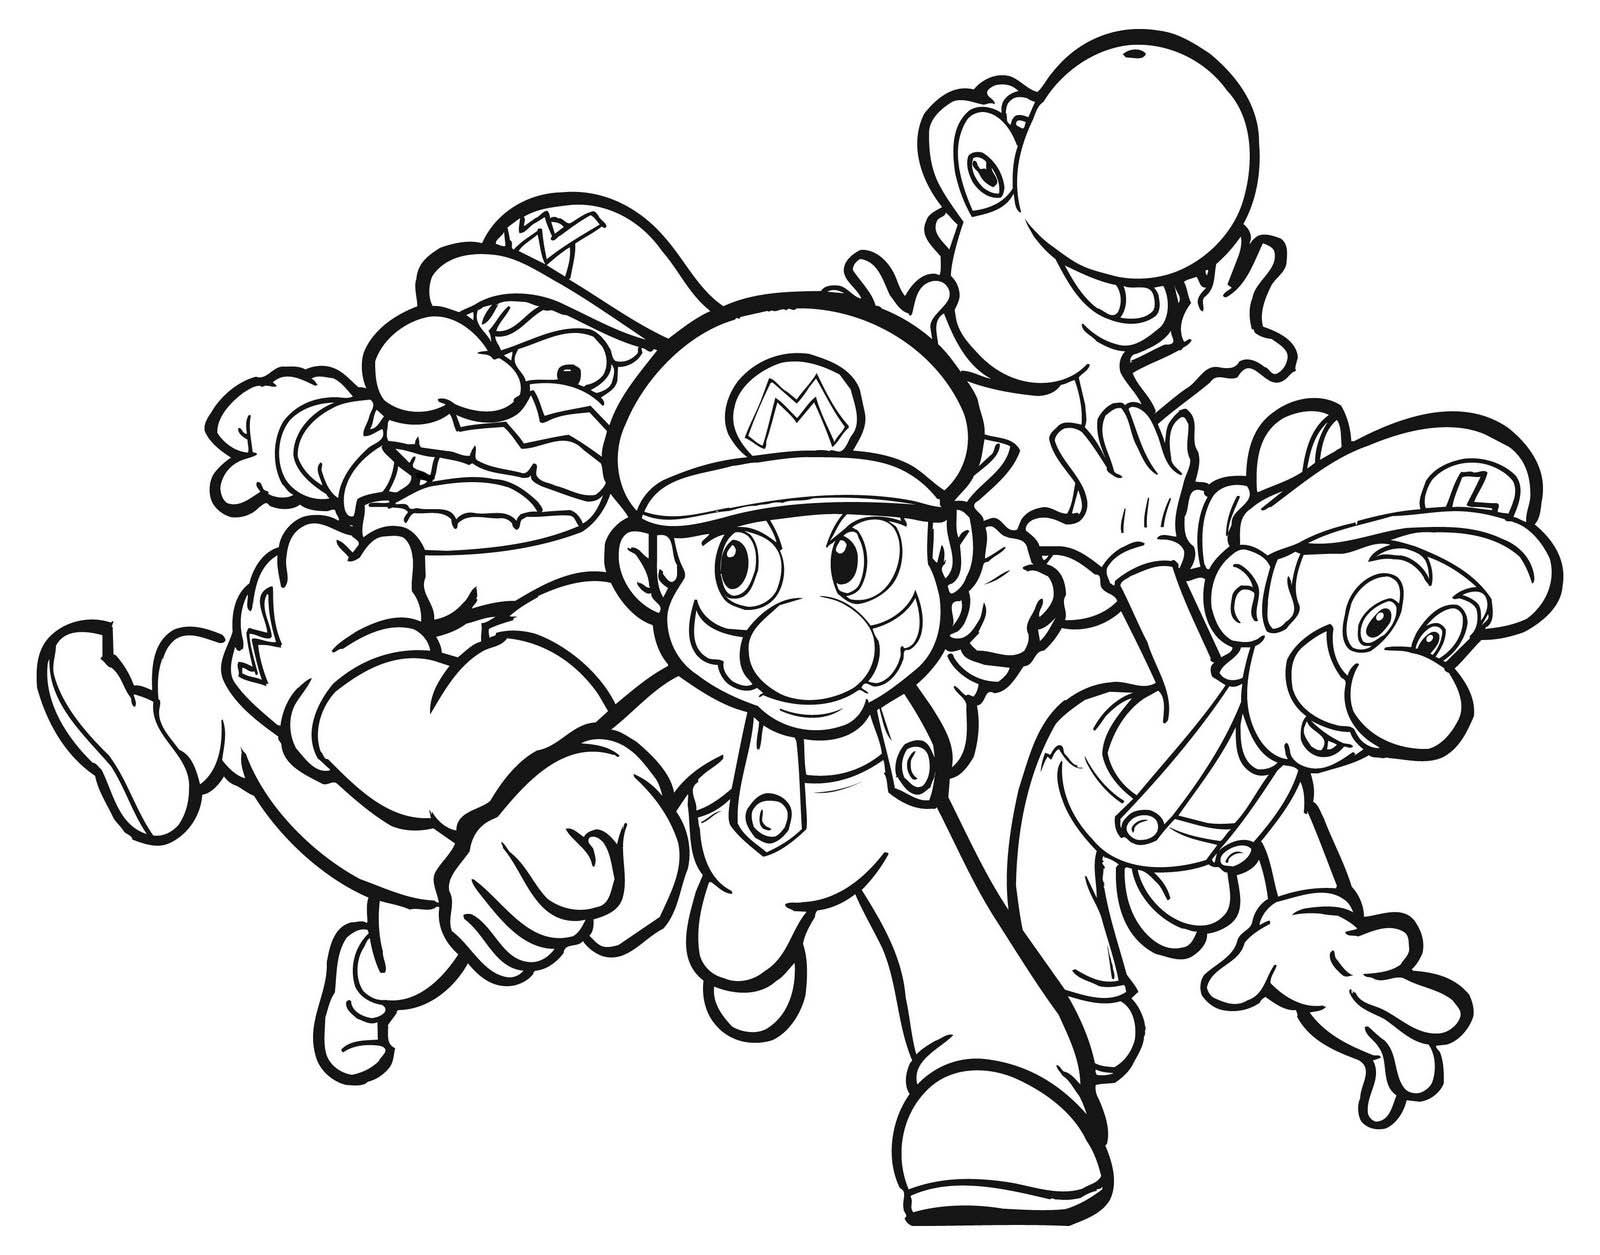 Free Printable Mario Coloring Pages For Kids | coloring pages ...